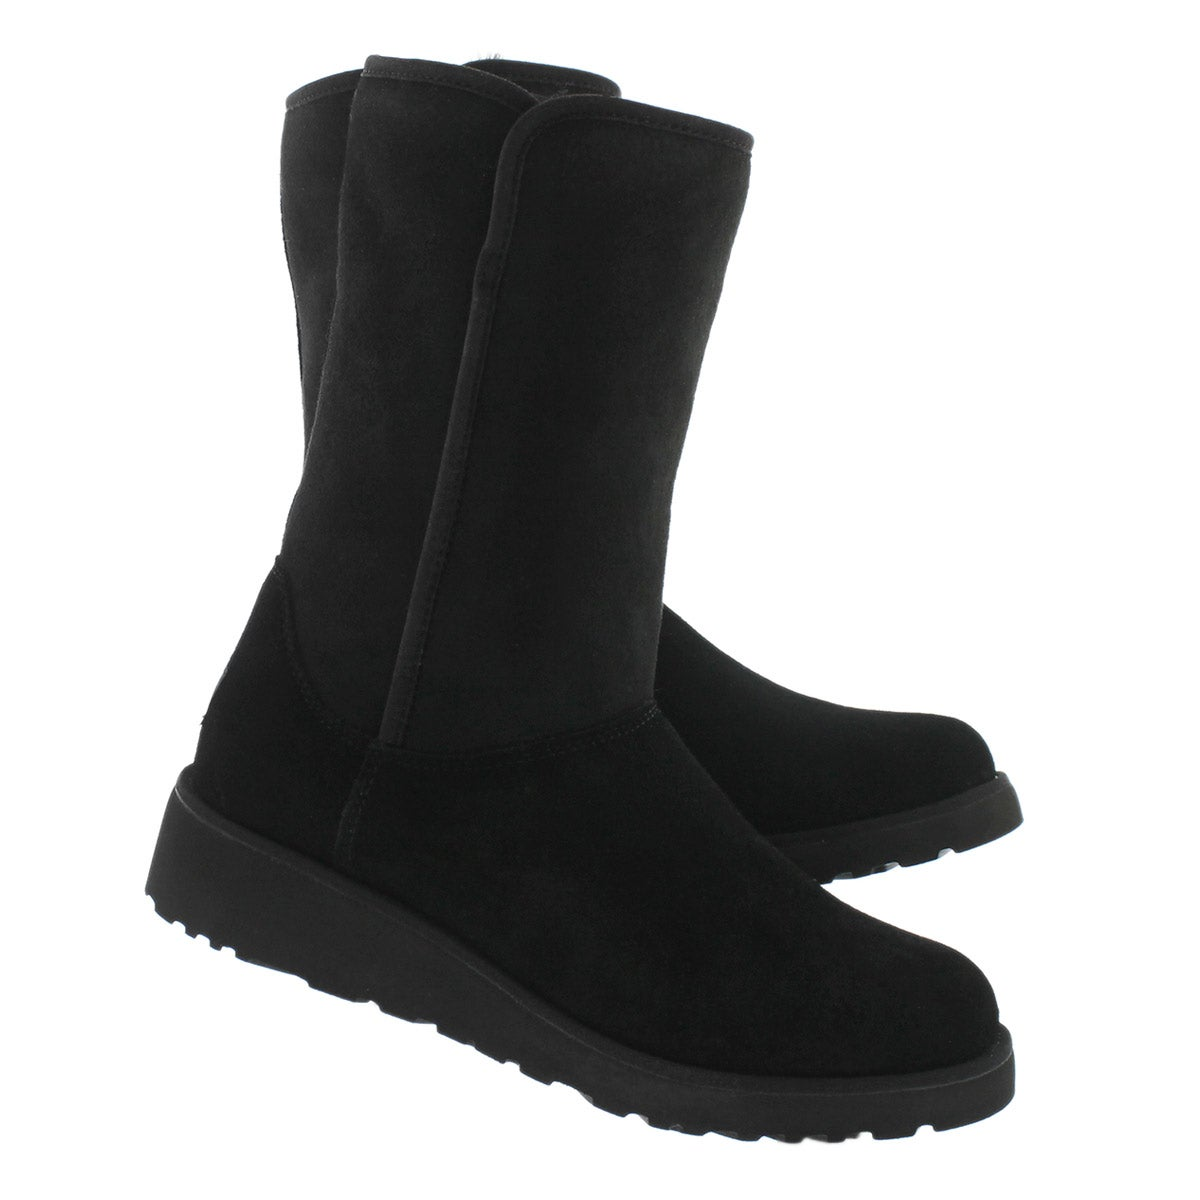 Lds Amie black wedge tall sheepskin boot